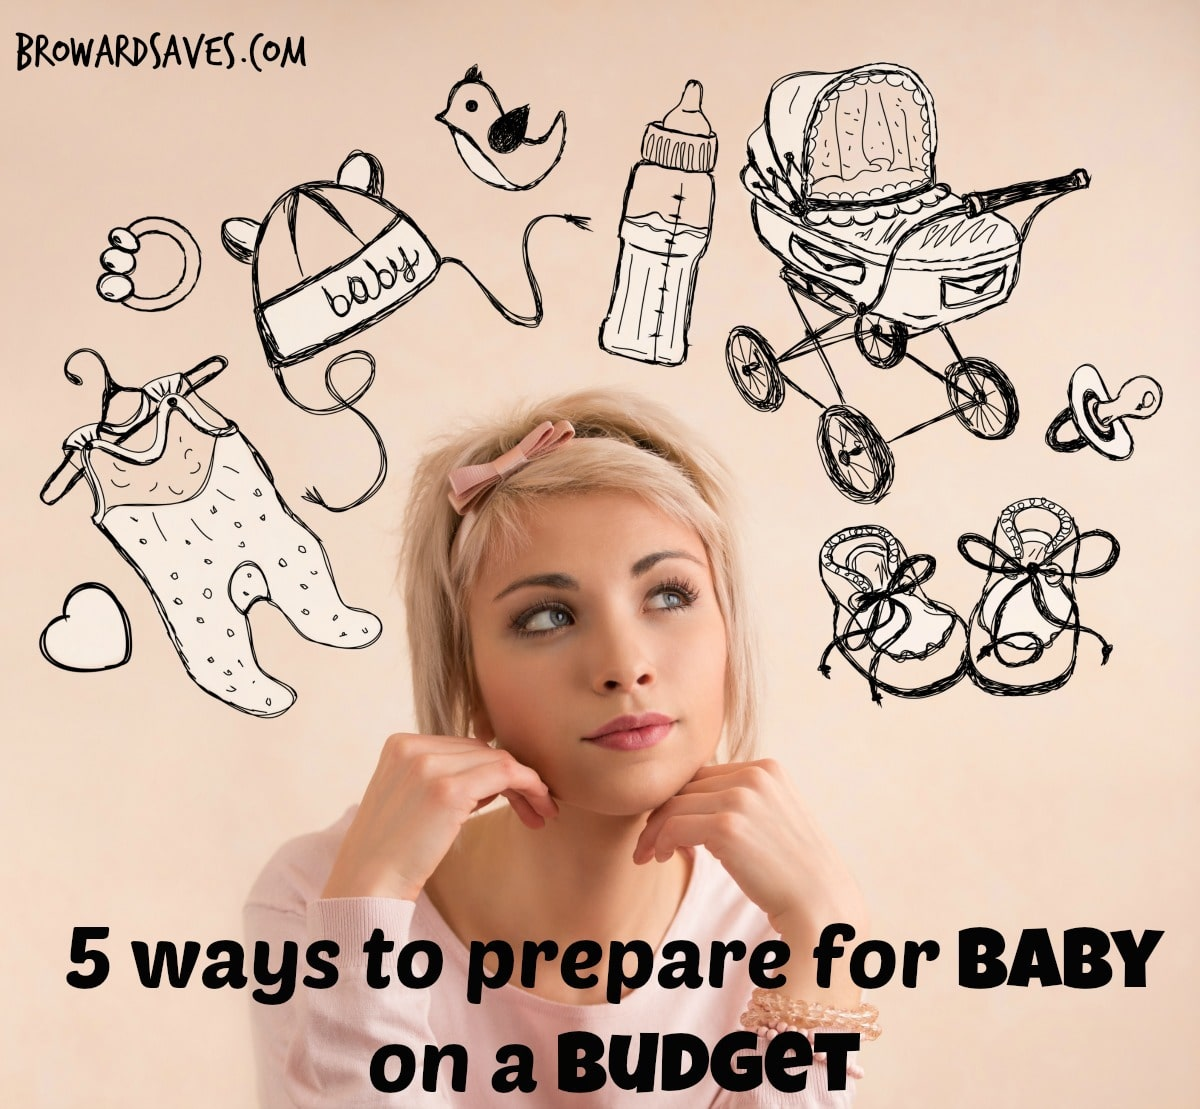 5 ways to prepare for baby on a budget (edited)